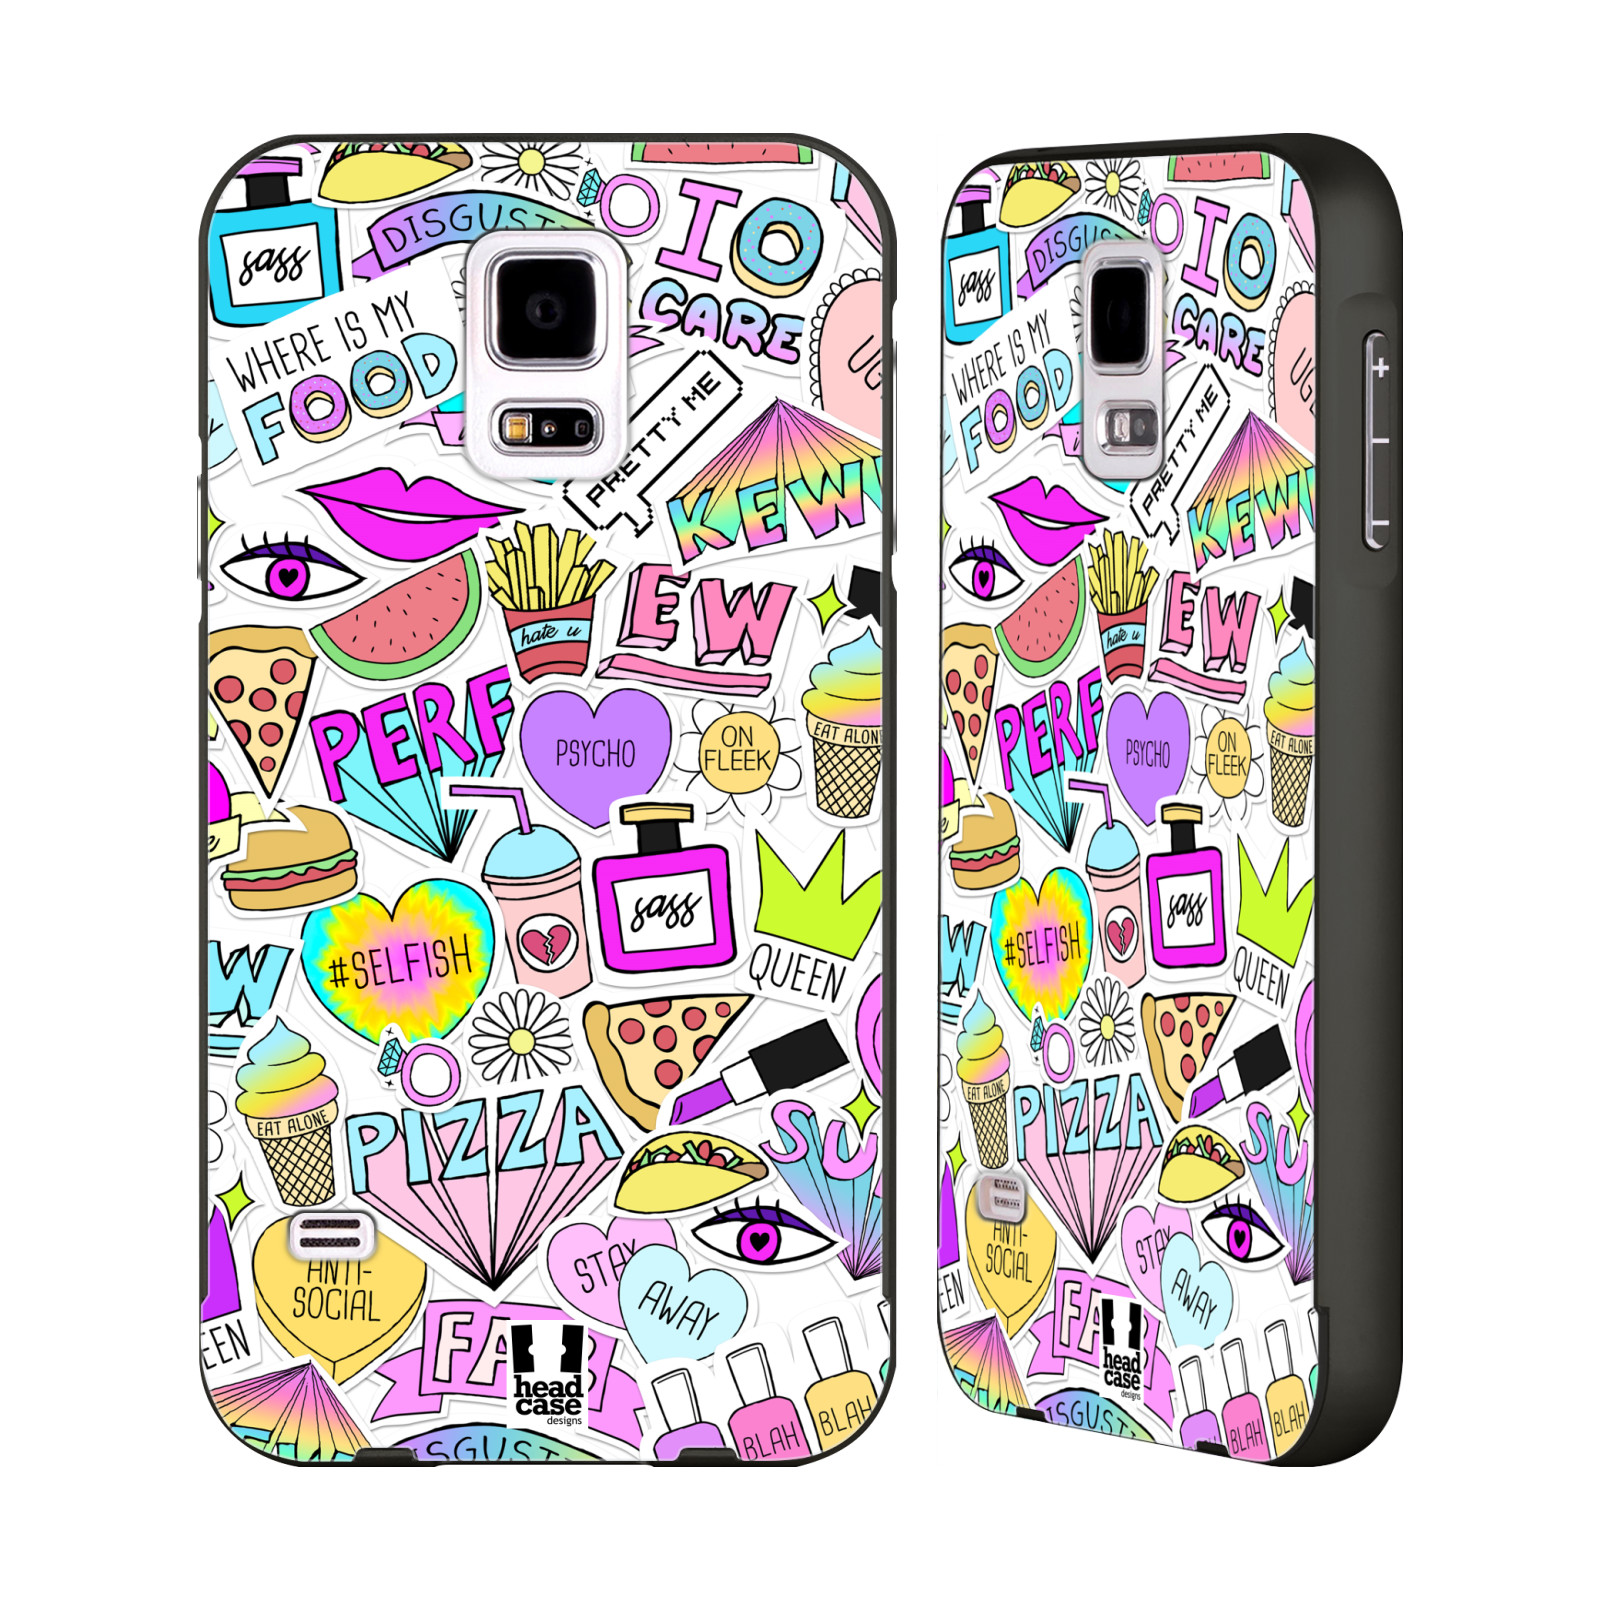 Head case designs sassy stickers black bumper slider case for Cell phone cover design ideas